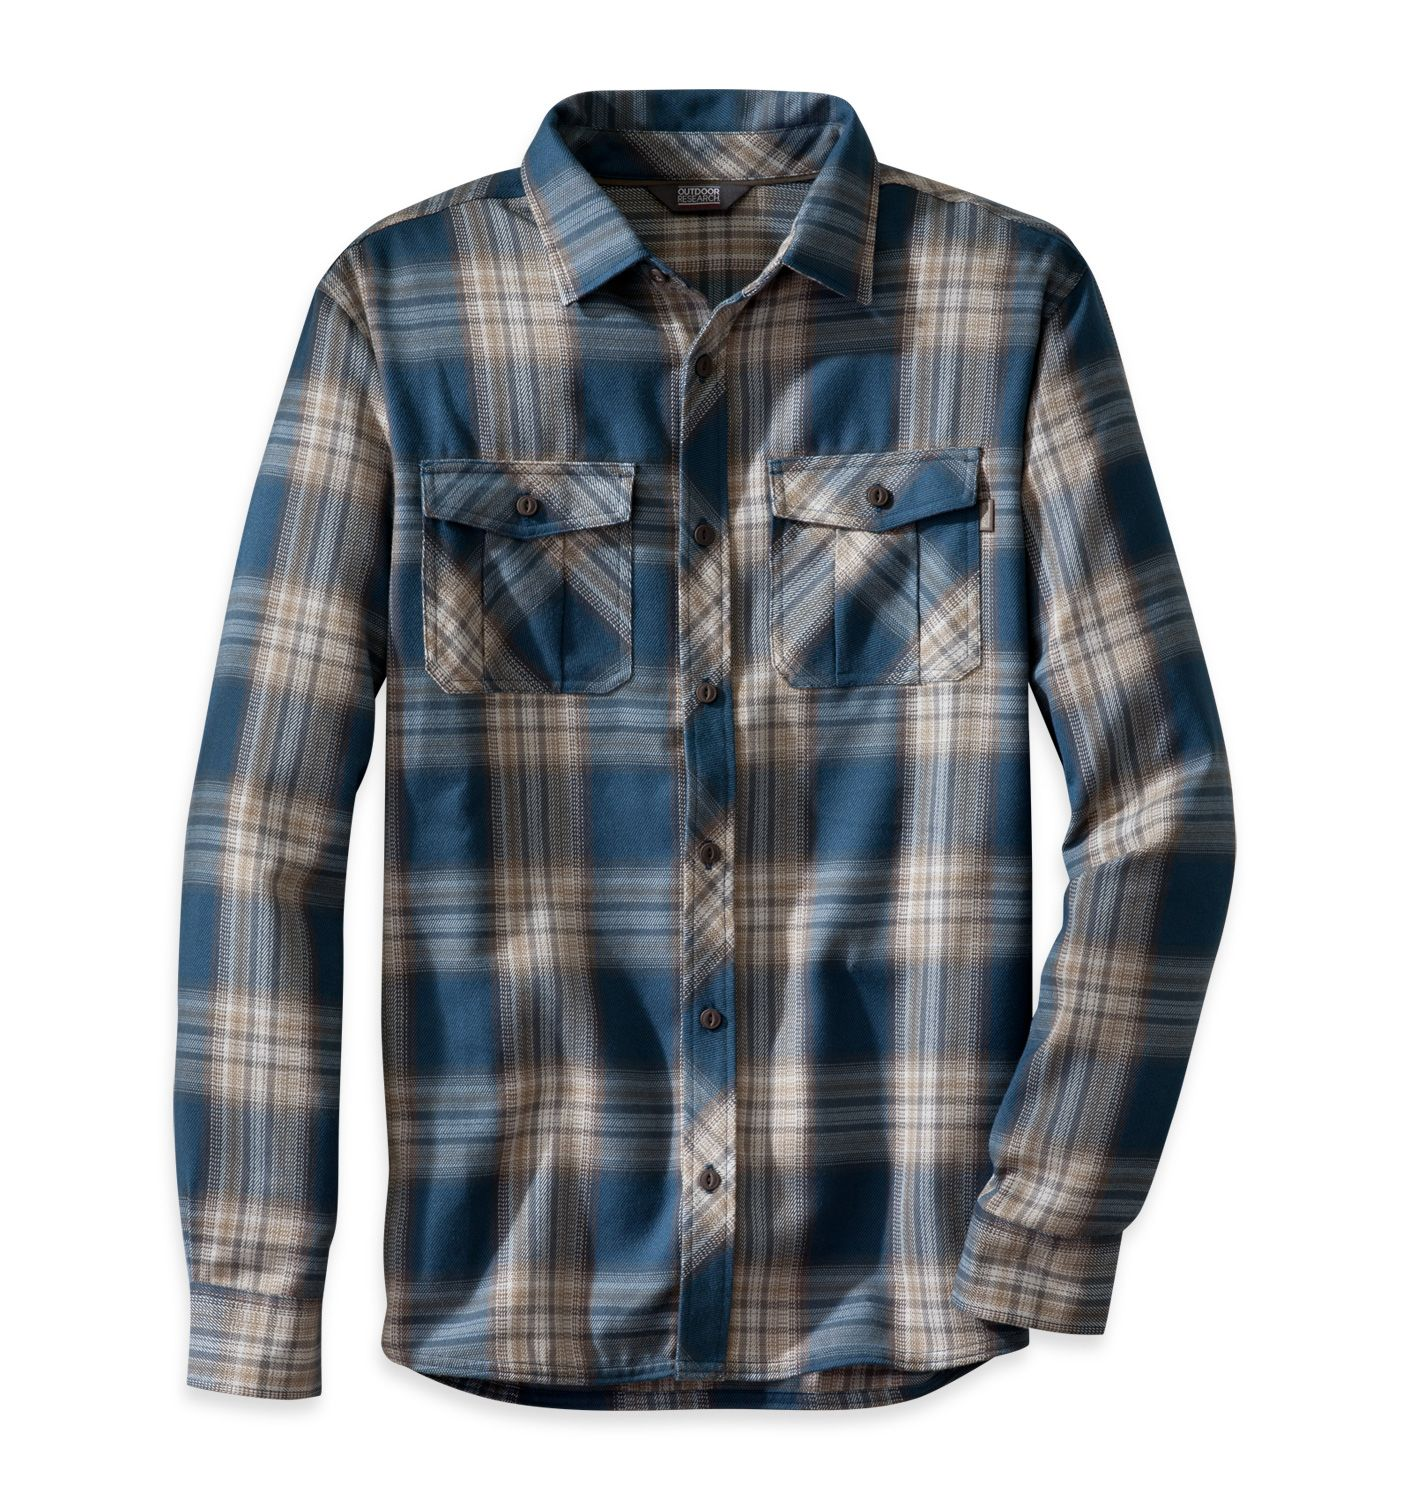 Men's Pitch L/S Shirt | Outdoor Research: The hollowcore polyester and wool construction of the Pitch Long Sleeve Shirt gives it the same long-lasting warmth and comfort as a night around the fire with close friends.